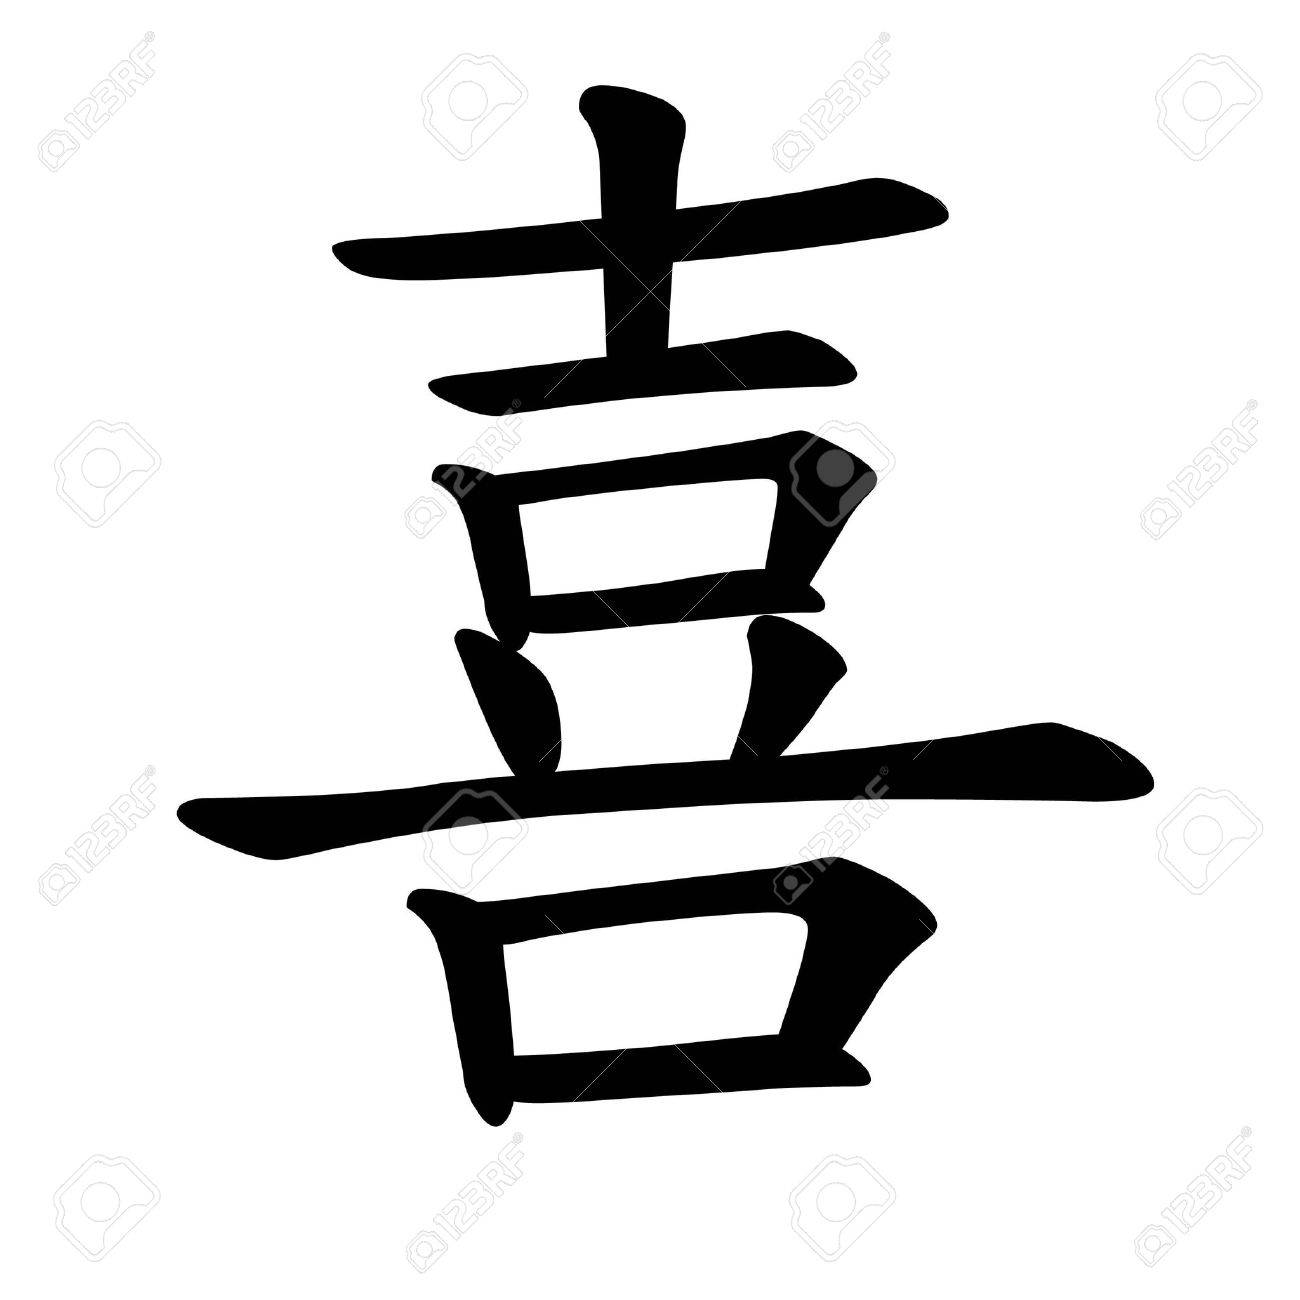 Happiness chinese character calligraphy Stock Photo - 7025584